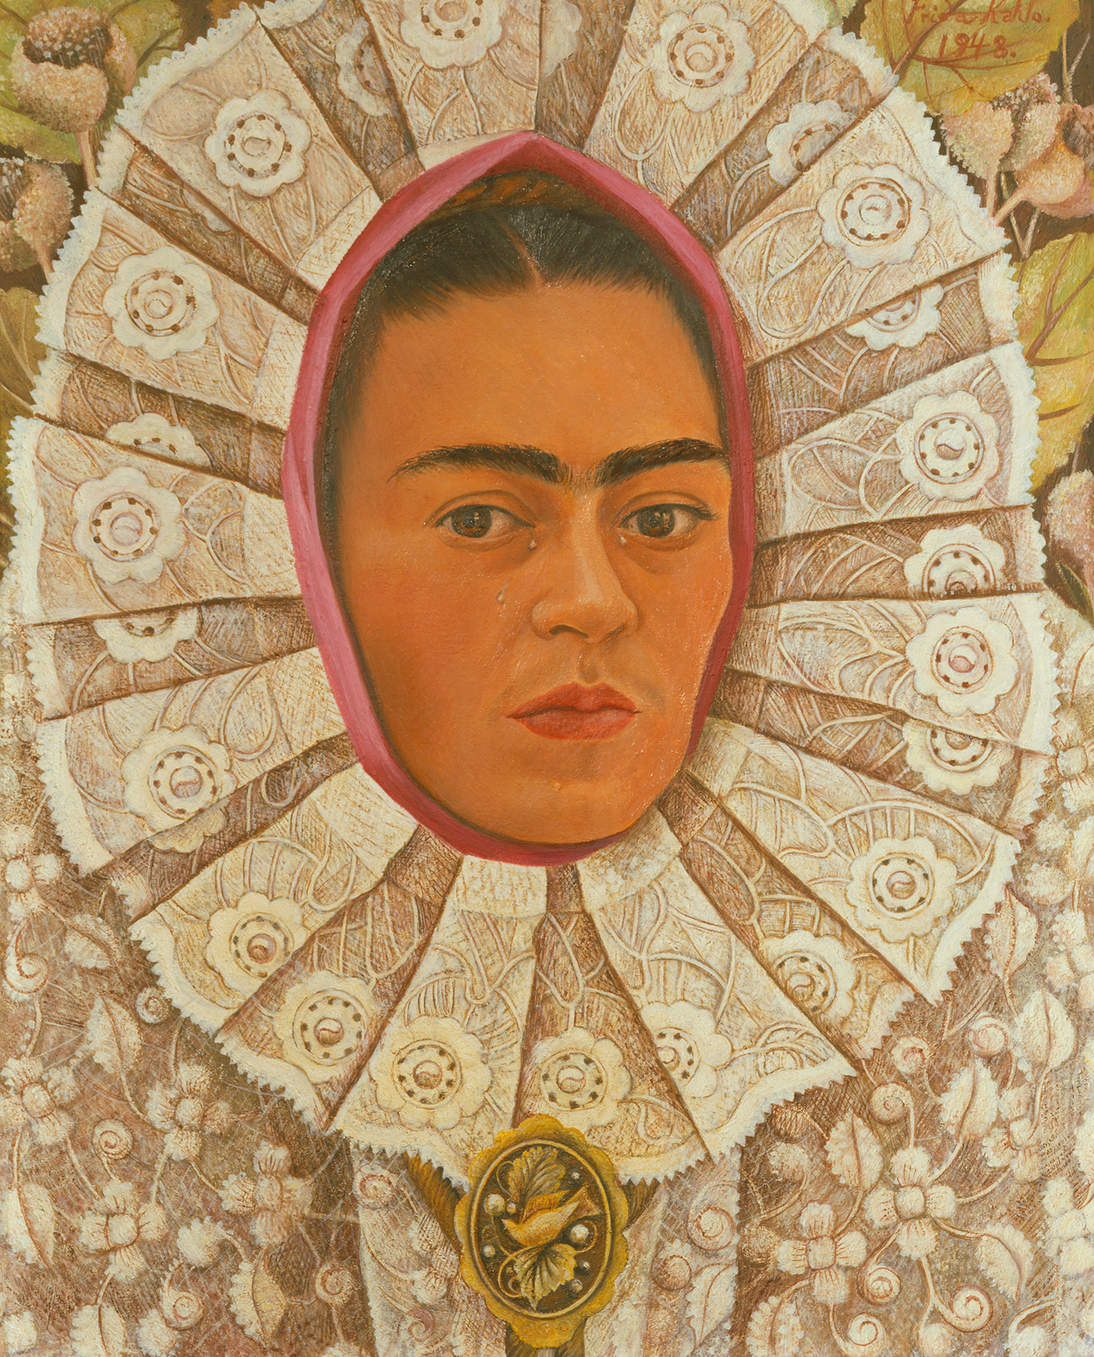 """Frida Kahlo, """"Self-Portrait,"""" 1948. Oil on Masonite, 20 x 15.6 in. (50 x 39.5 cm). Private collection © 2020 Banco de México Diego Rivera & Frida Kahlo Museums Trust. Av. 5 de Mayo No. 2, Col. Centro, alc. Cuauhtémoc, C.P. 06000, Mexico City / Artists Rights Society (ARS), New York / Erich Lessing / Art Resource, NY"""